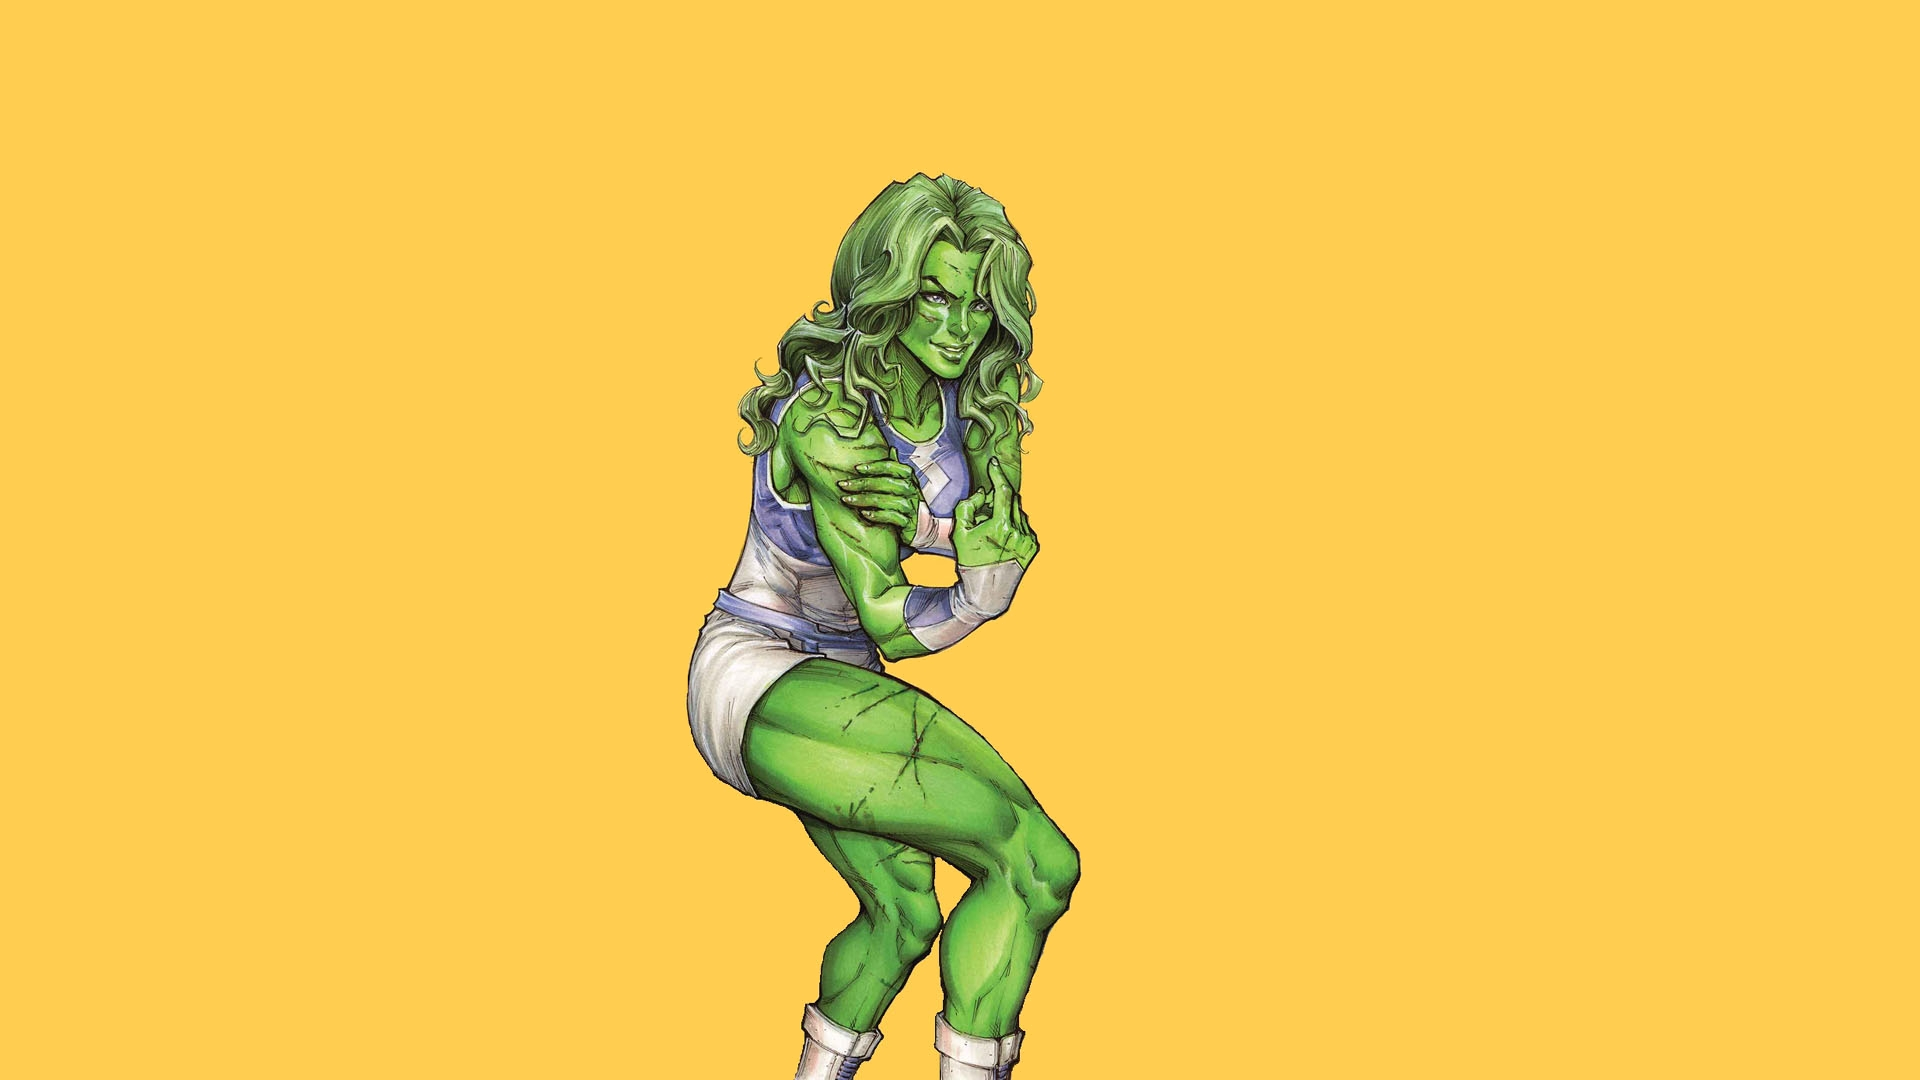 She hulk Computer Wallpaper Desktop Background 1920x1080 1920x1080